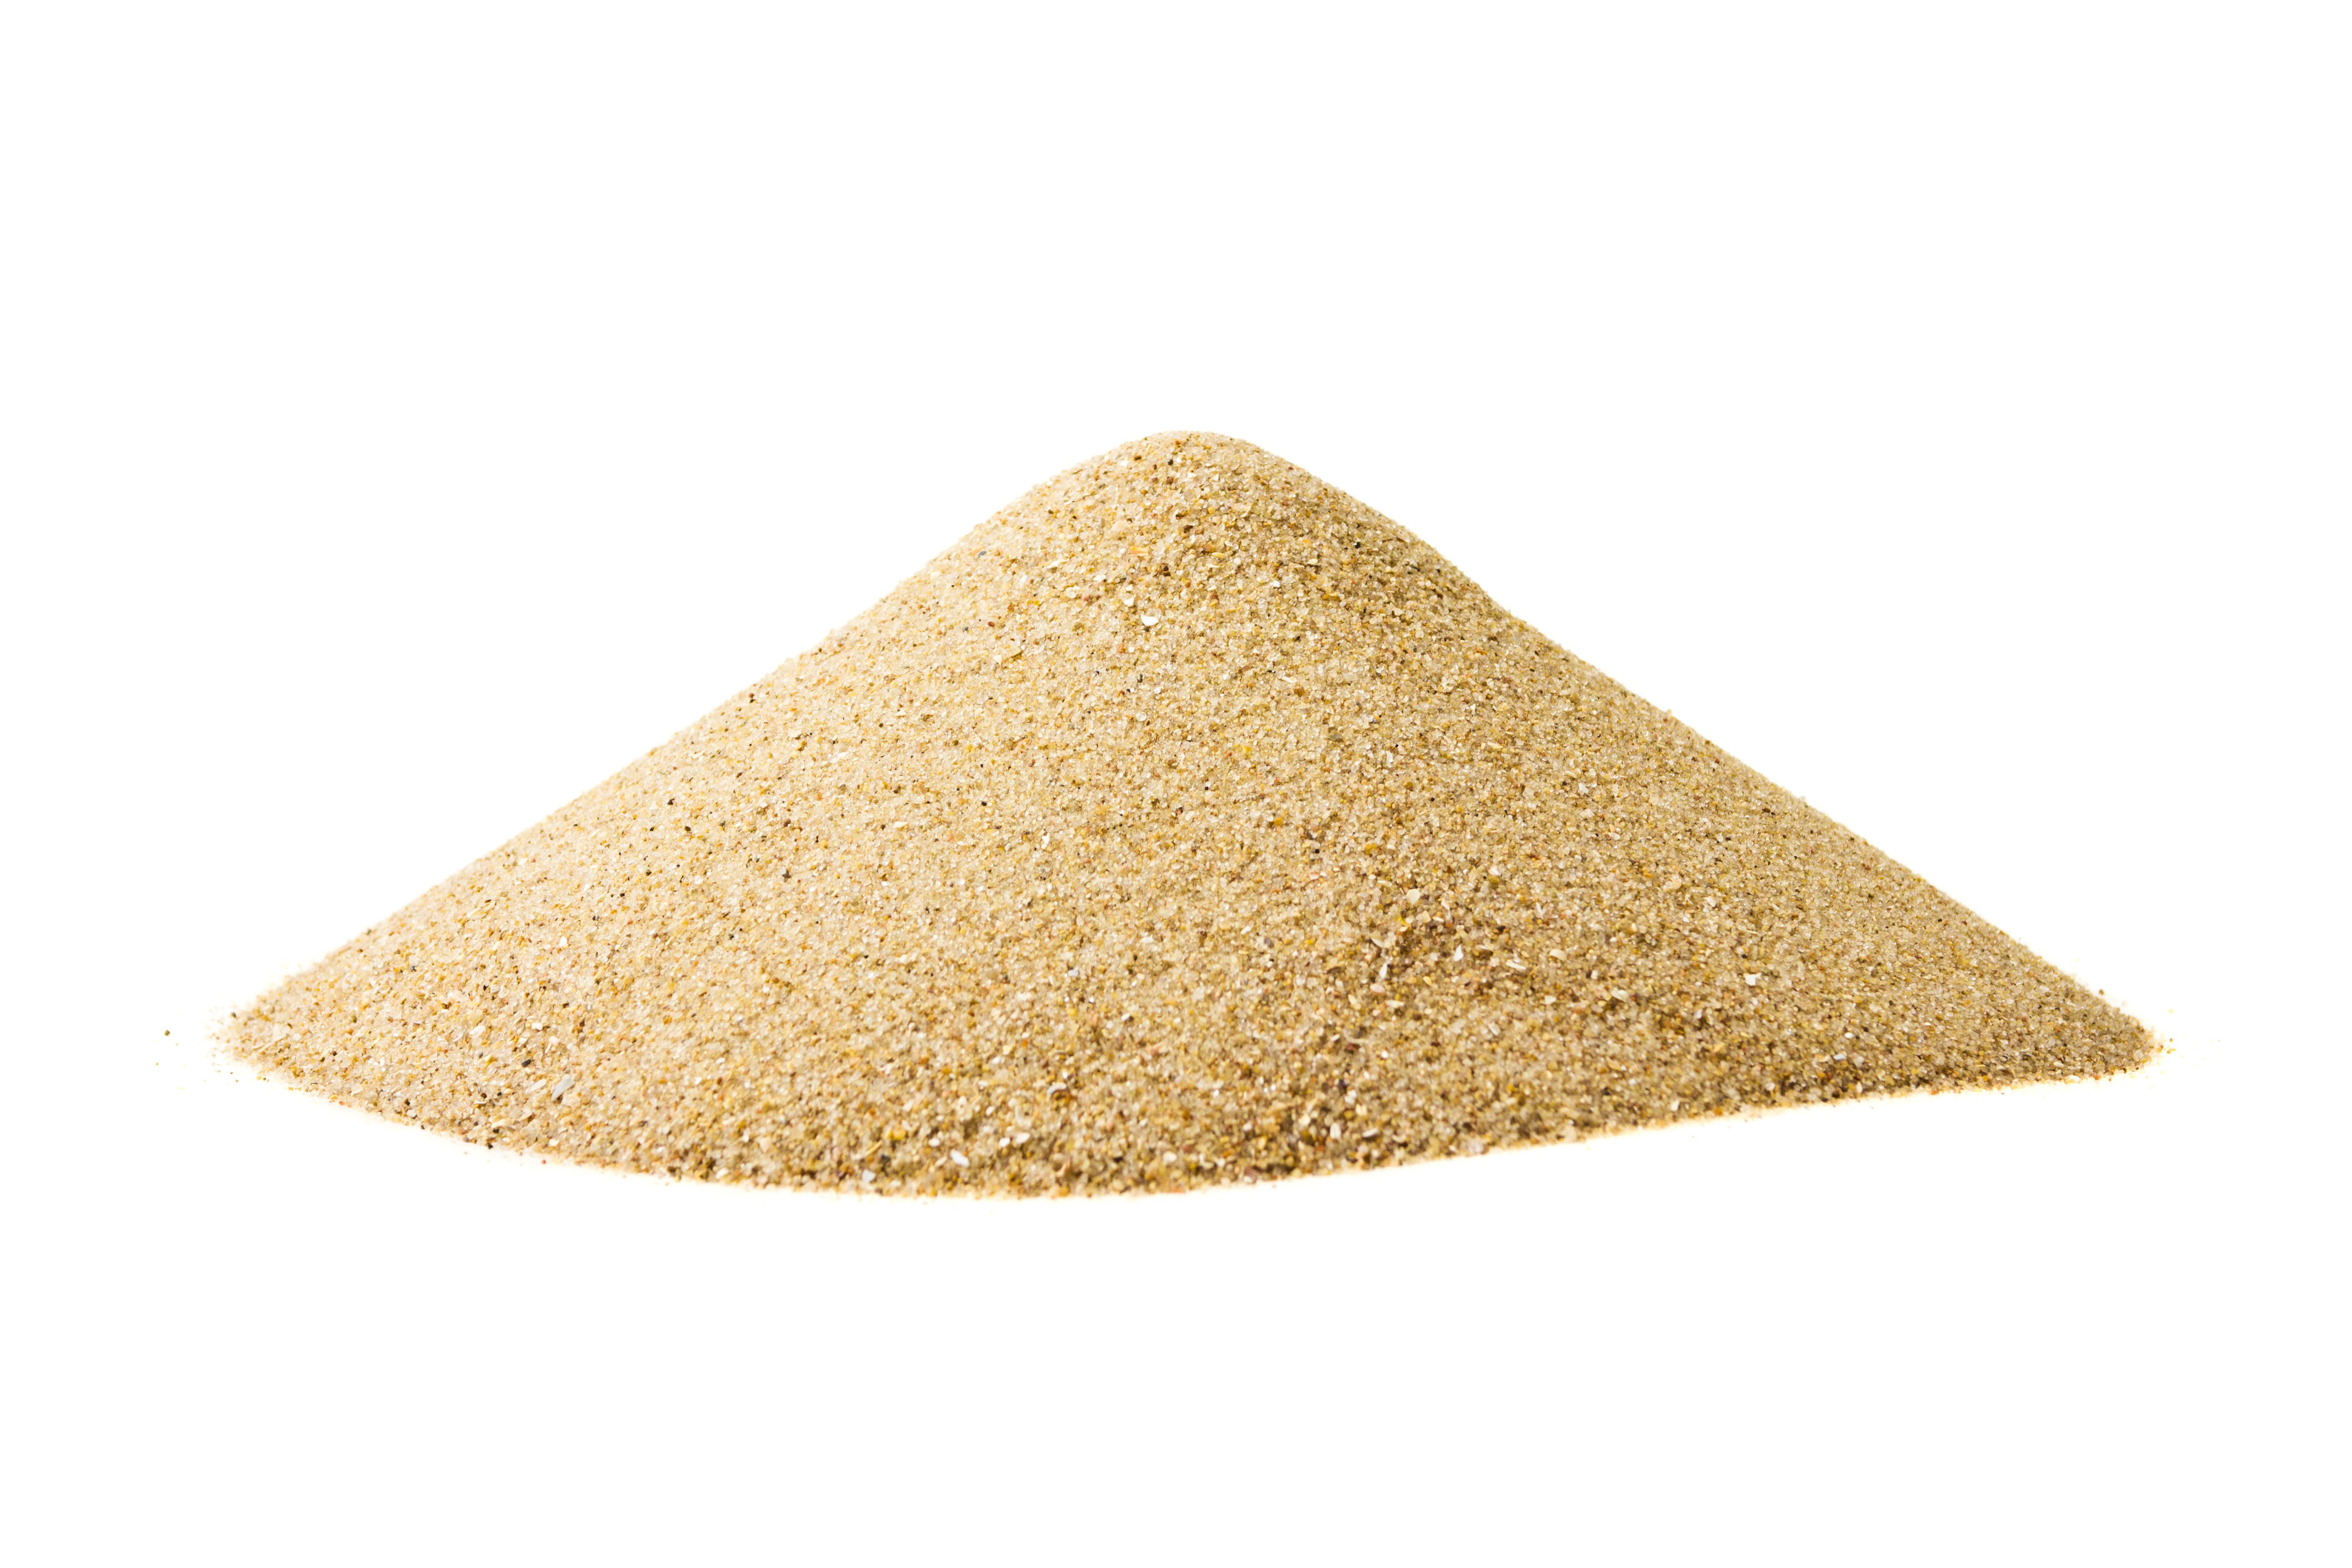 clipart free clipart use this sand pile clipart free clipart clipart ...